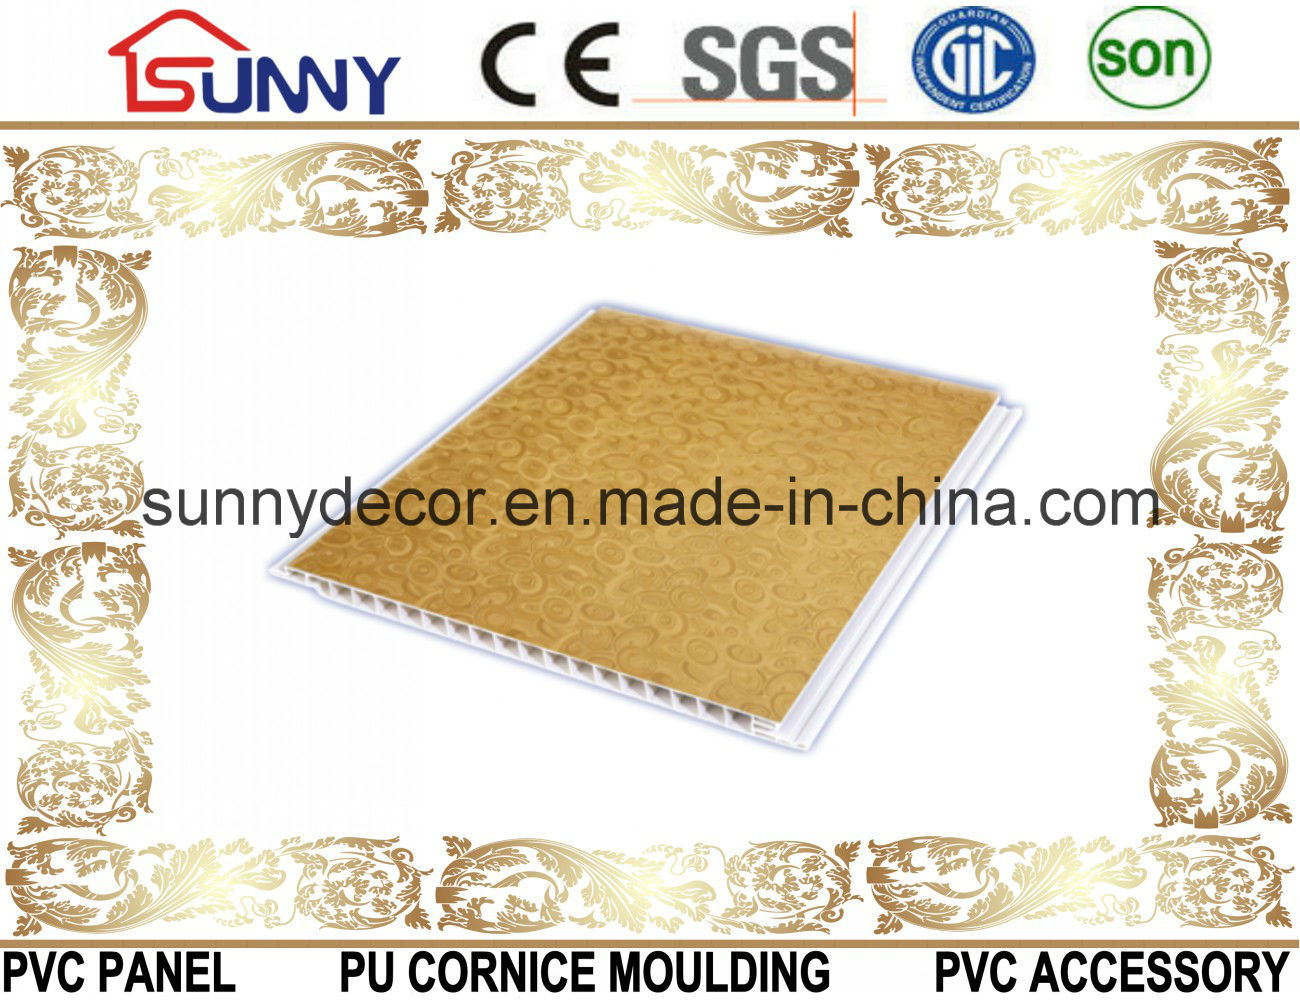 2016 New Laminated PVC Panel Used for Wall and Ceiling